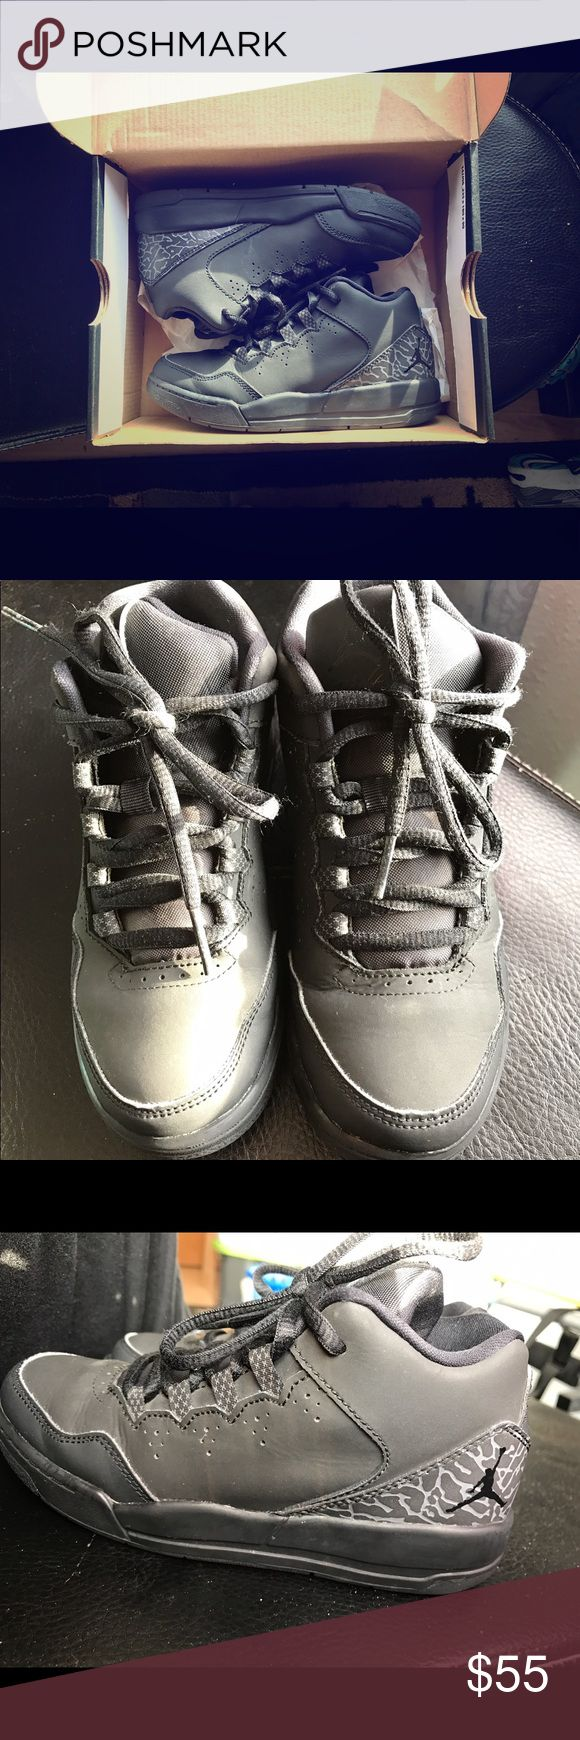 Jordan Flight Origin 2 BP Jordan's in excellent condition. Worn less than a handful of times. A water mark on the side but a good wipe down or a toss in the wash would make it look new again. Please ask questions if you have any. Jordan Shoes Sneakers